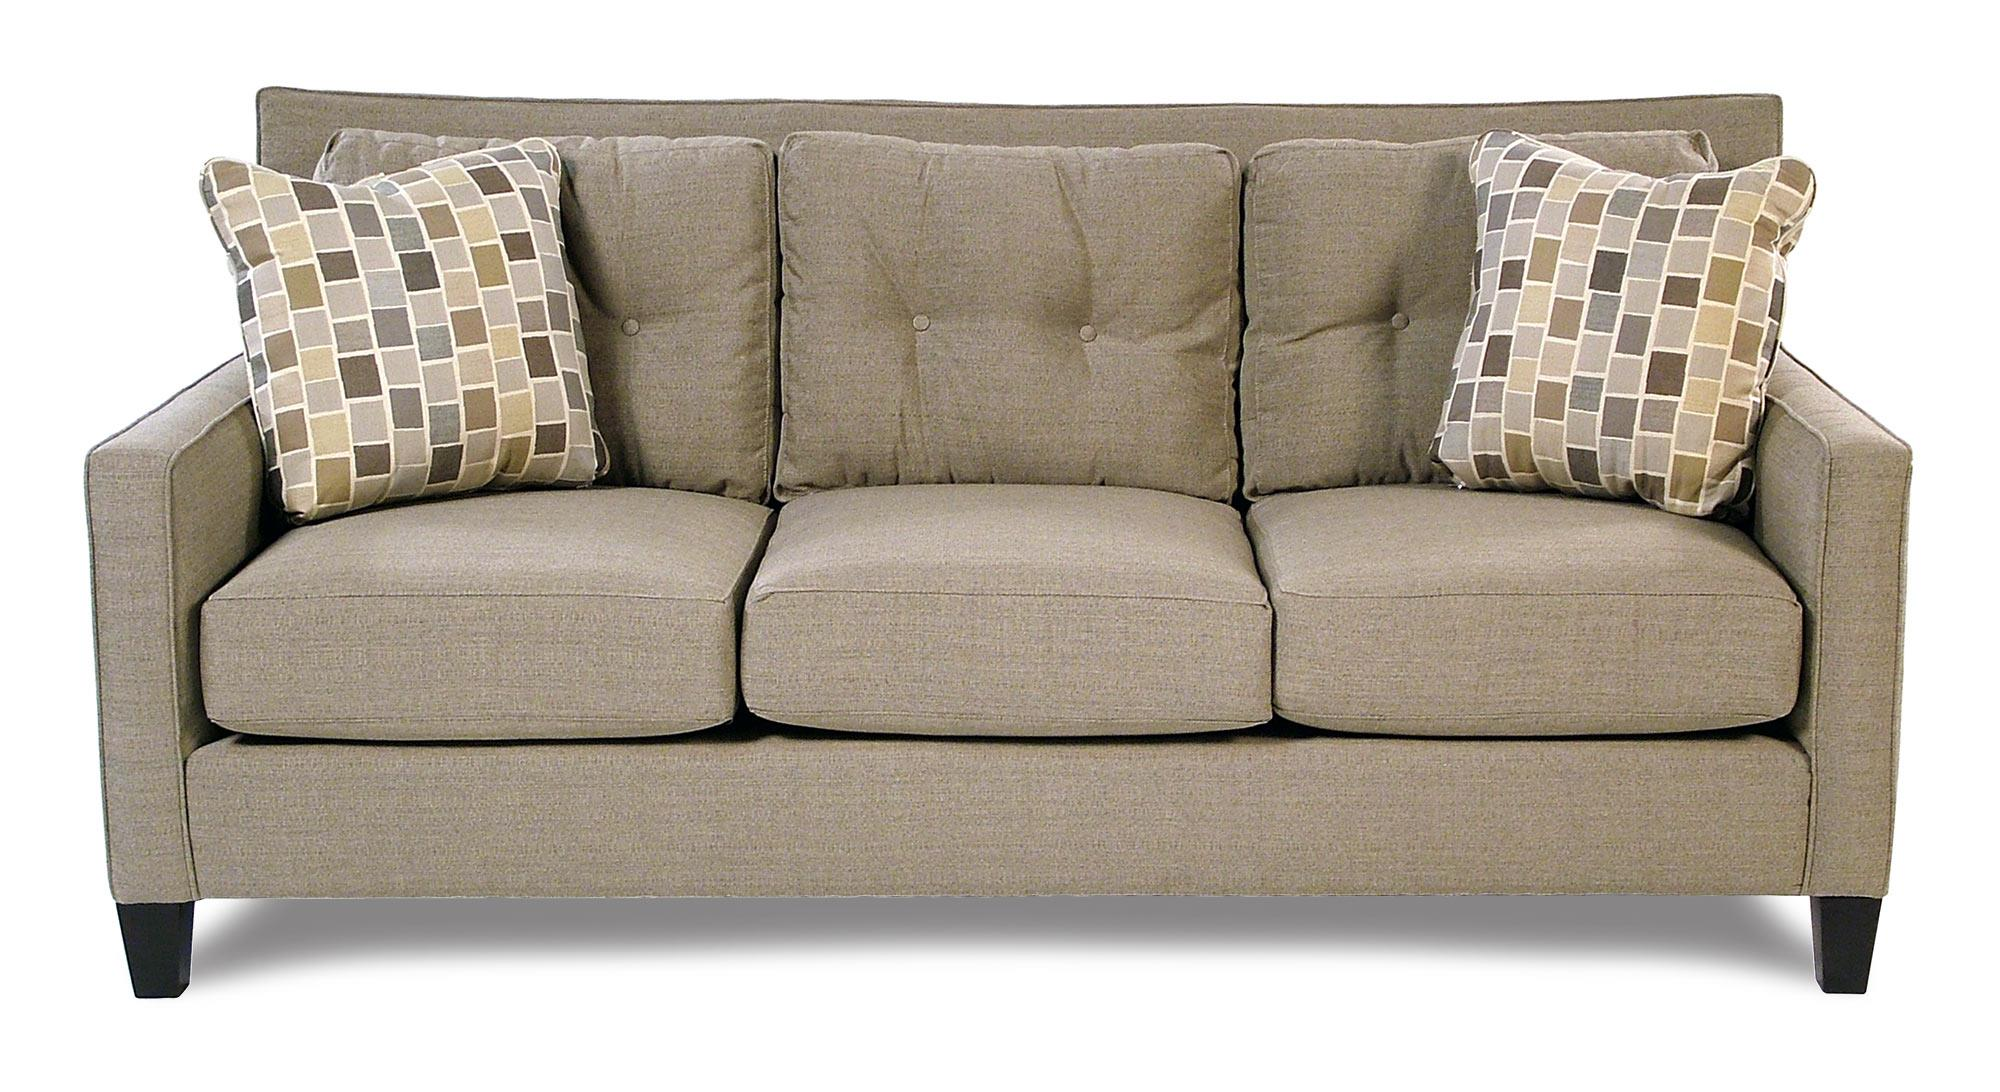 Broyhill Furniture Stonehill Contemporary Sofa w/ Tufted Back - Item Number: S6018-3-8319-0000